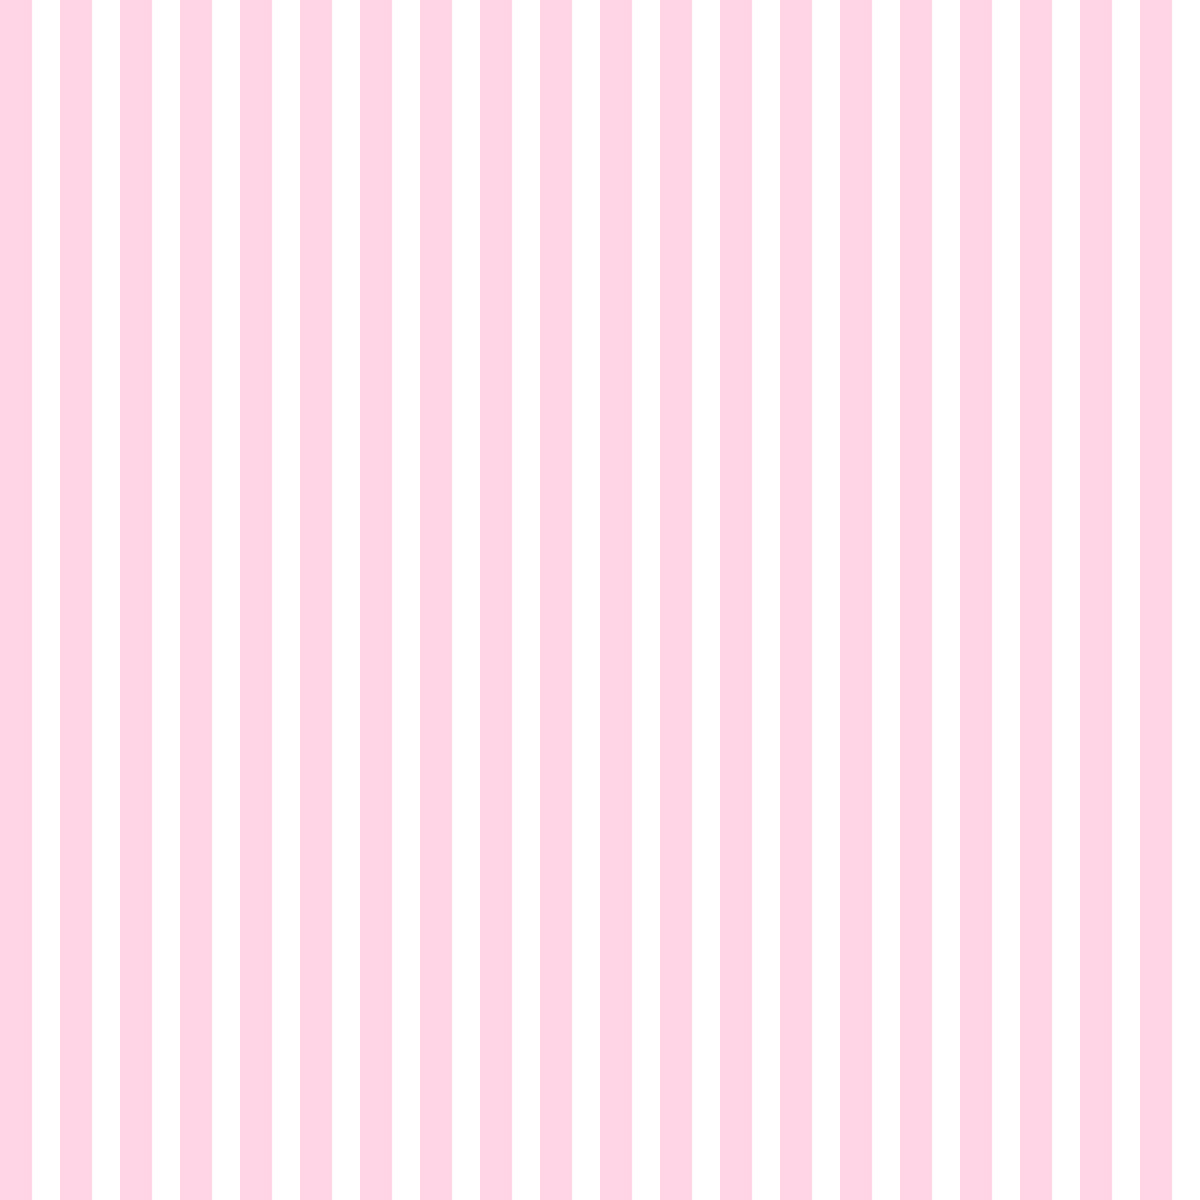 Free digital striped scrapbooking paper - ausdruckbares ...